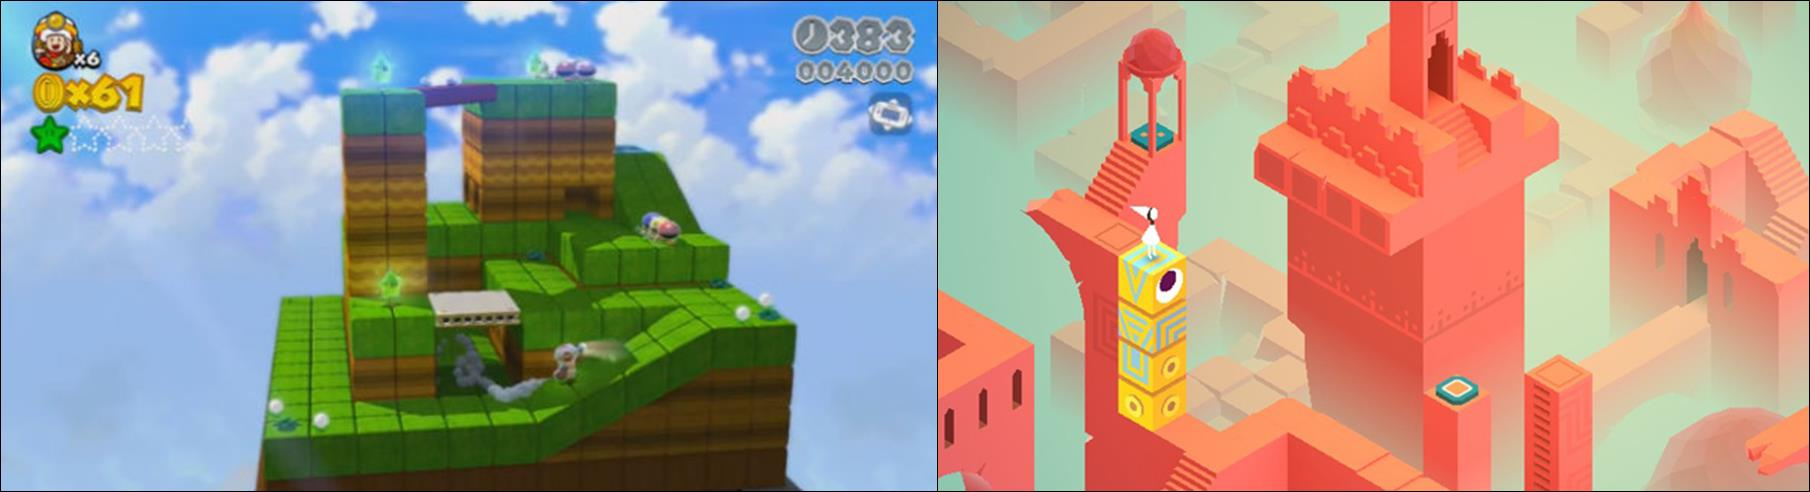 Captain Toad and Monument Valley